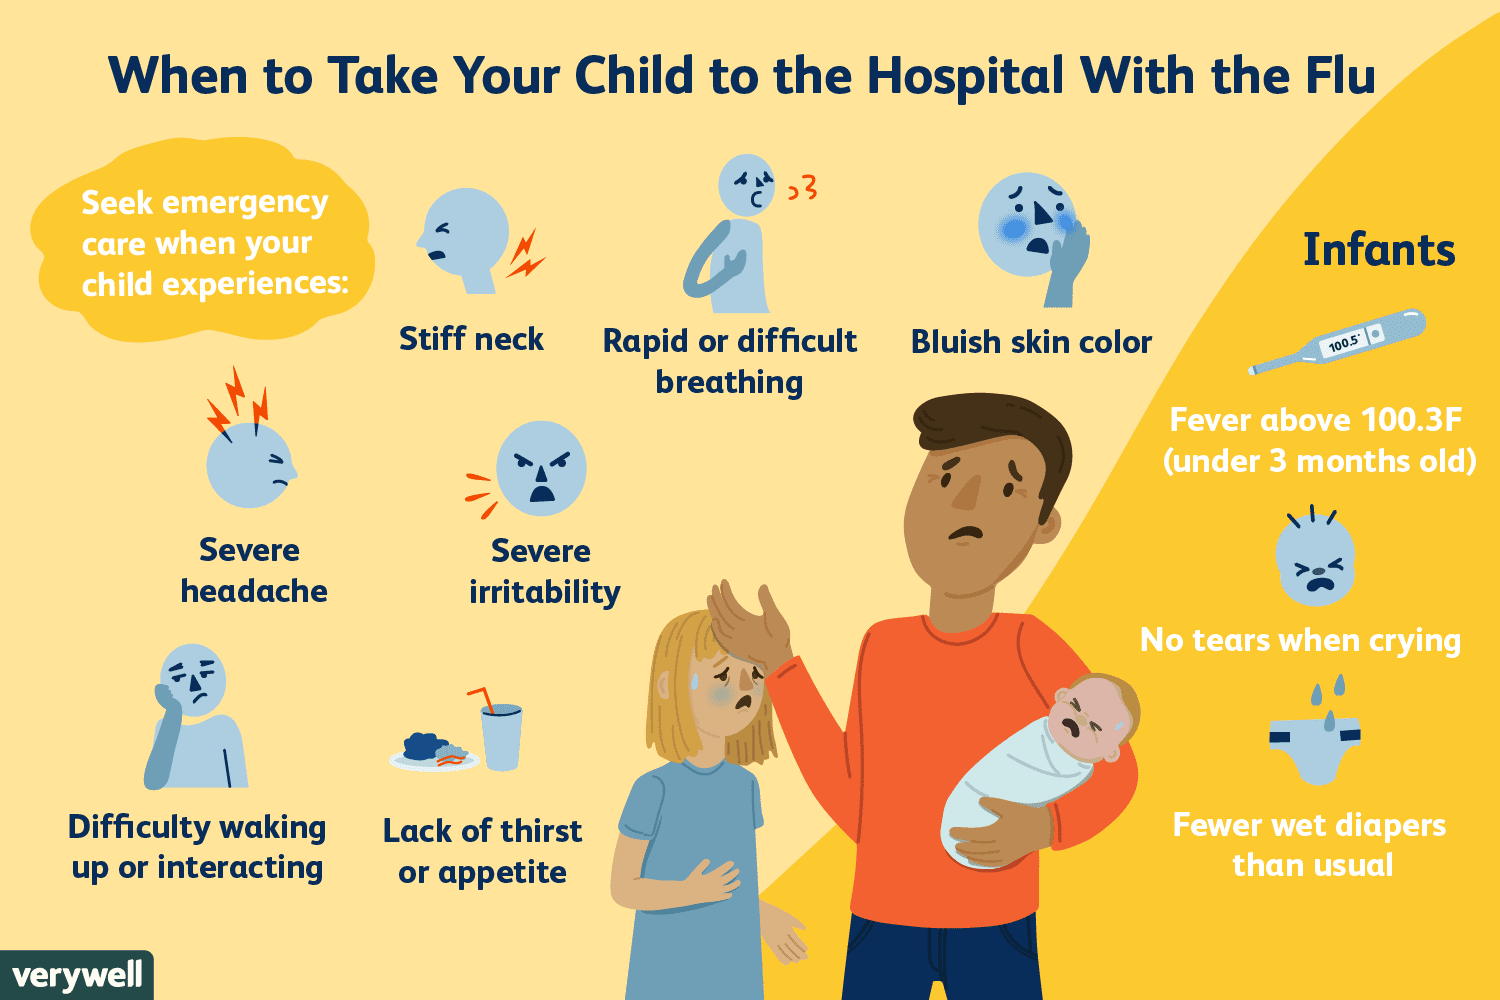 when should you go to the hospital with the flu